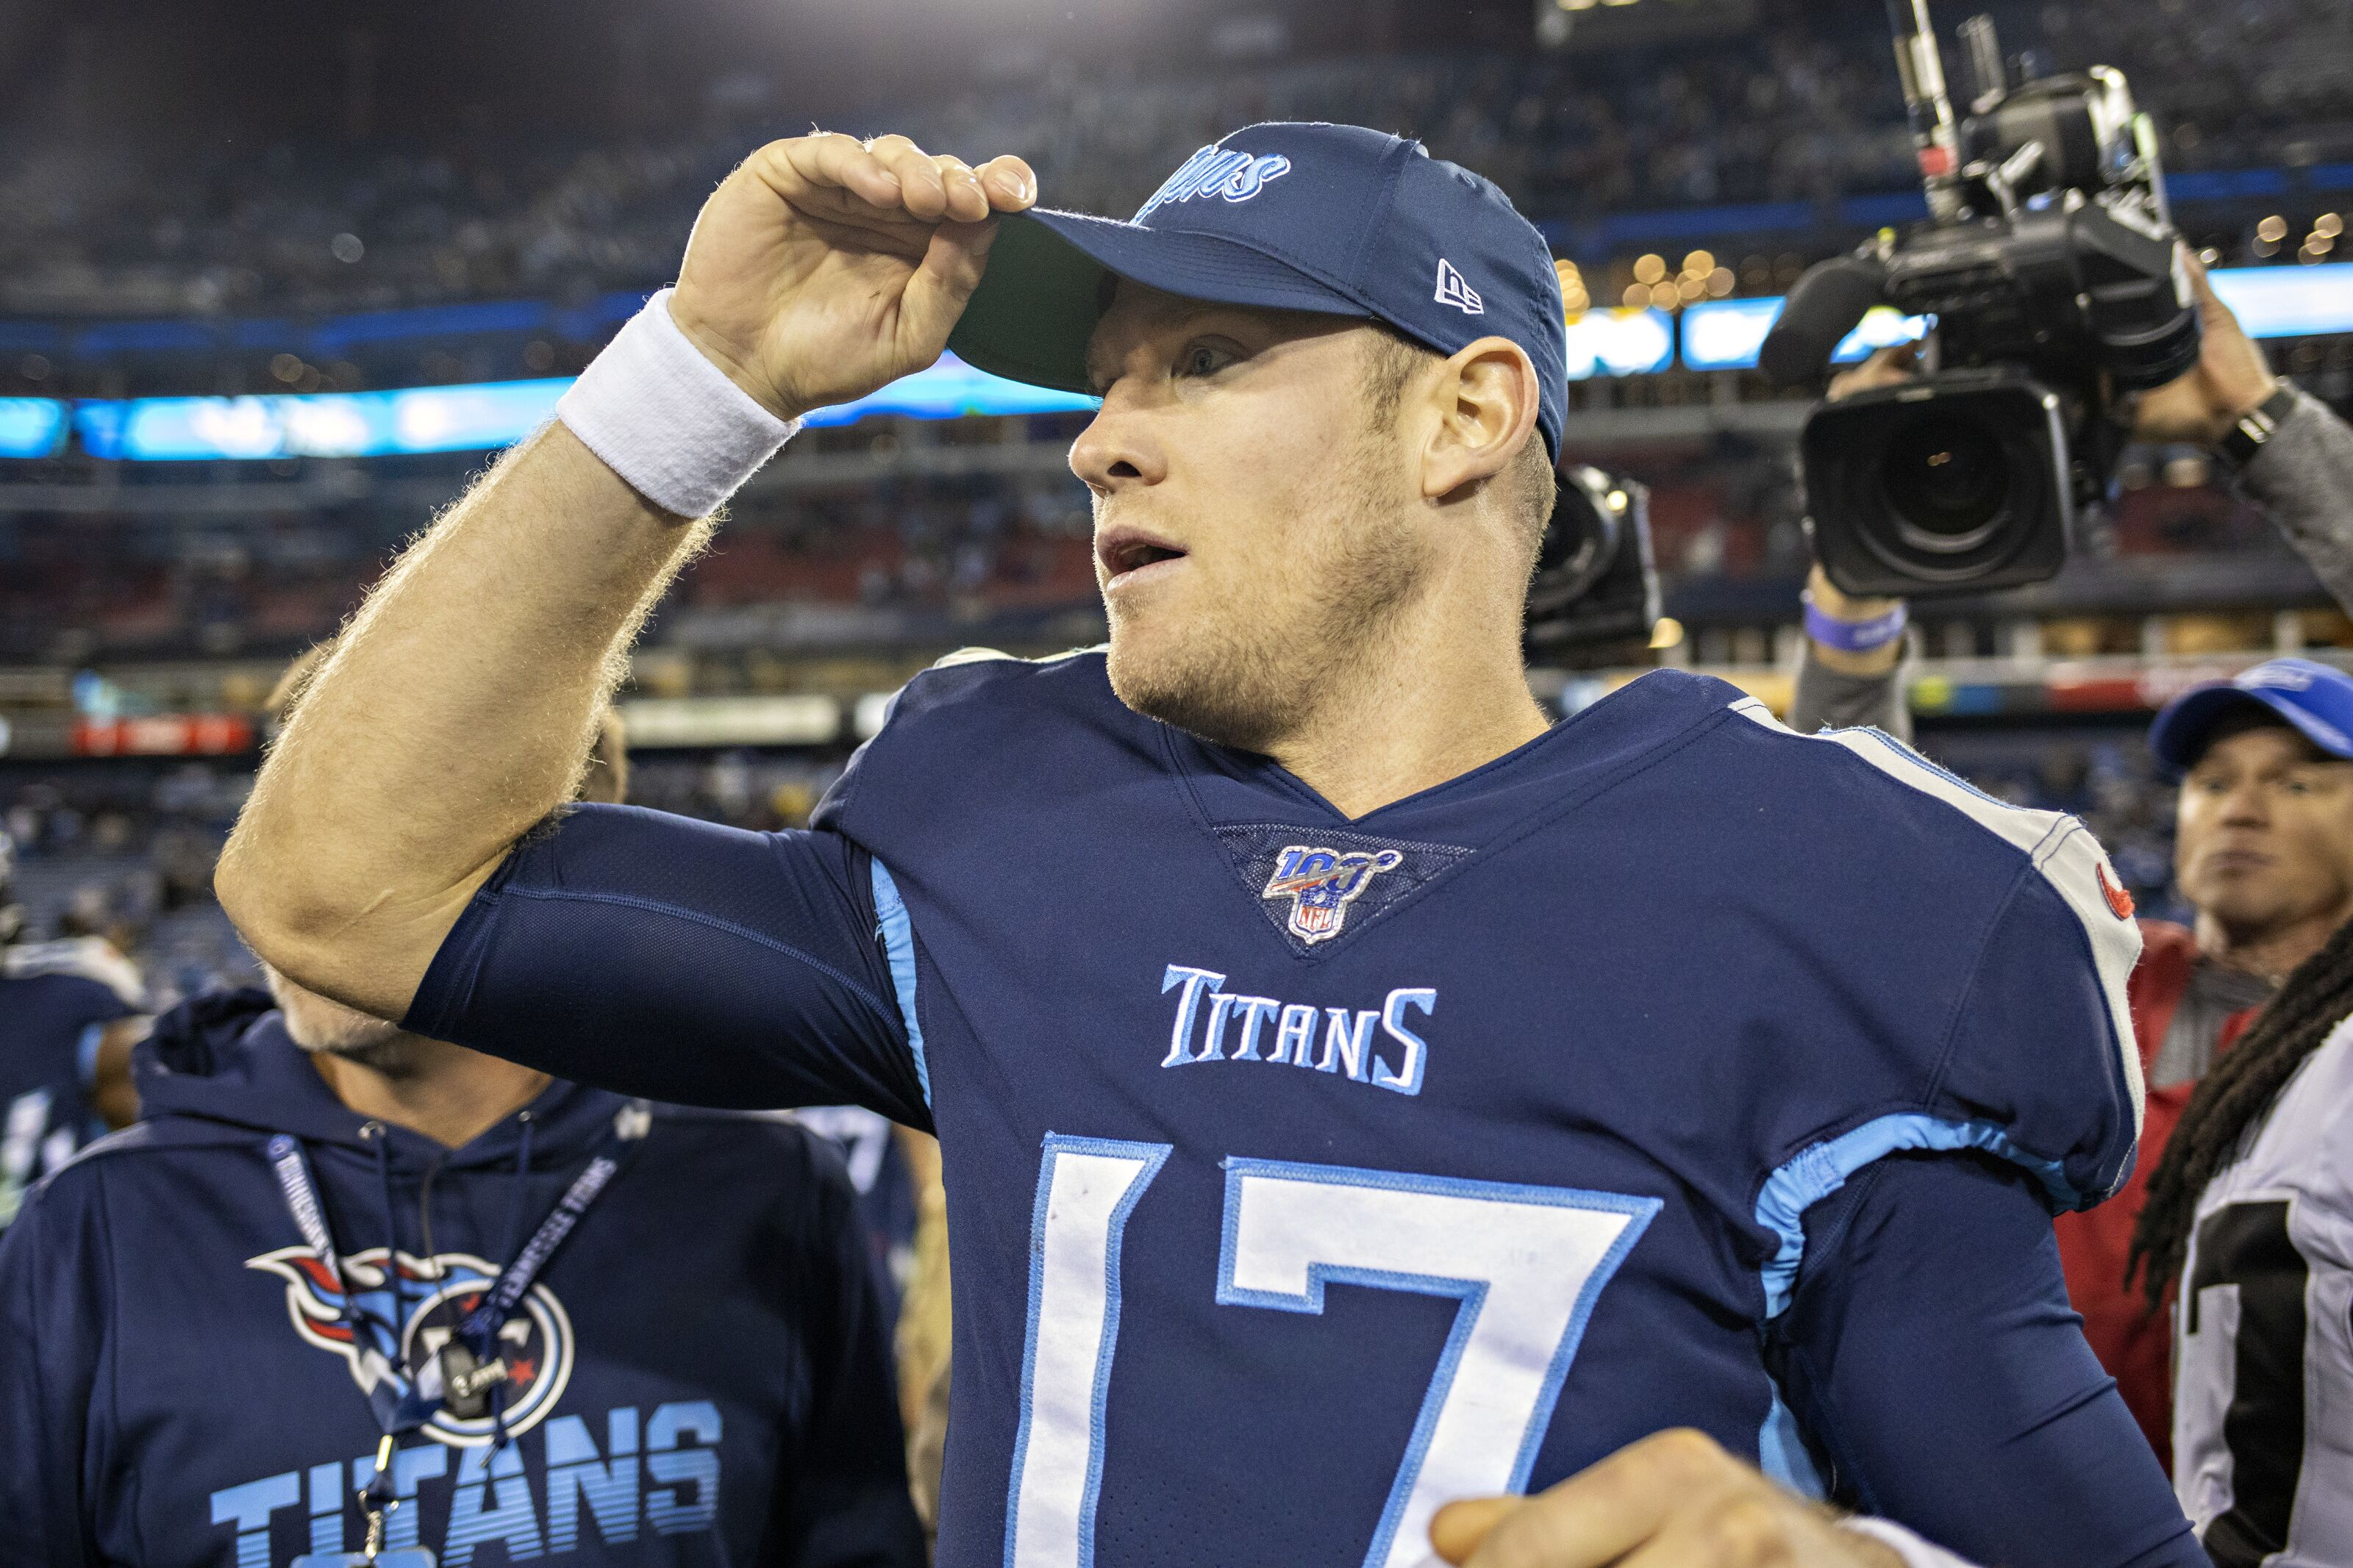 Will the Titans make the playoffs?